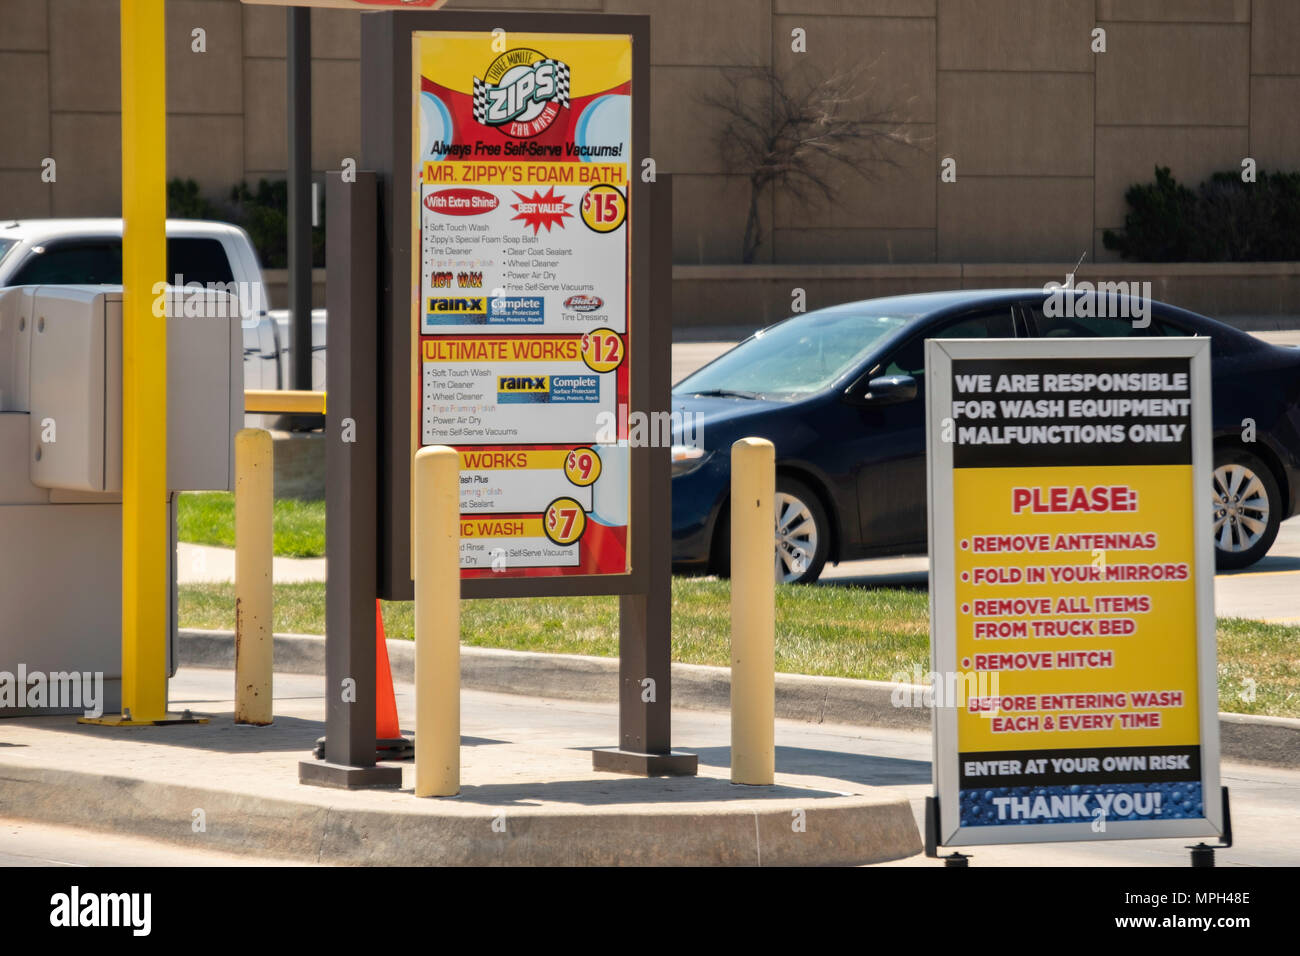 The Signs And Instructions At The Entrance Of A Zips Automatic Car